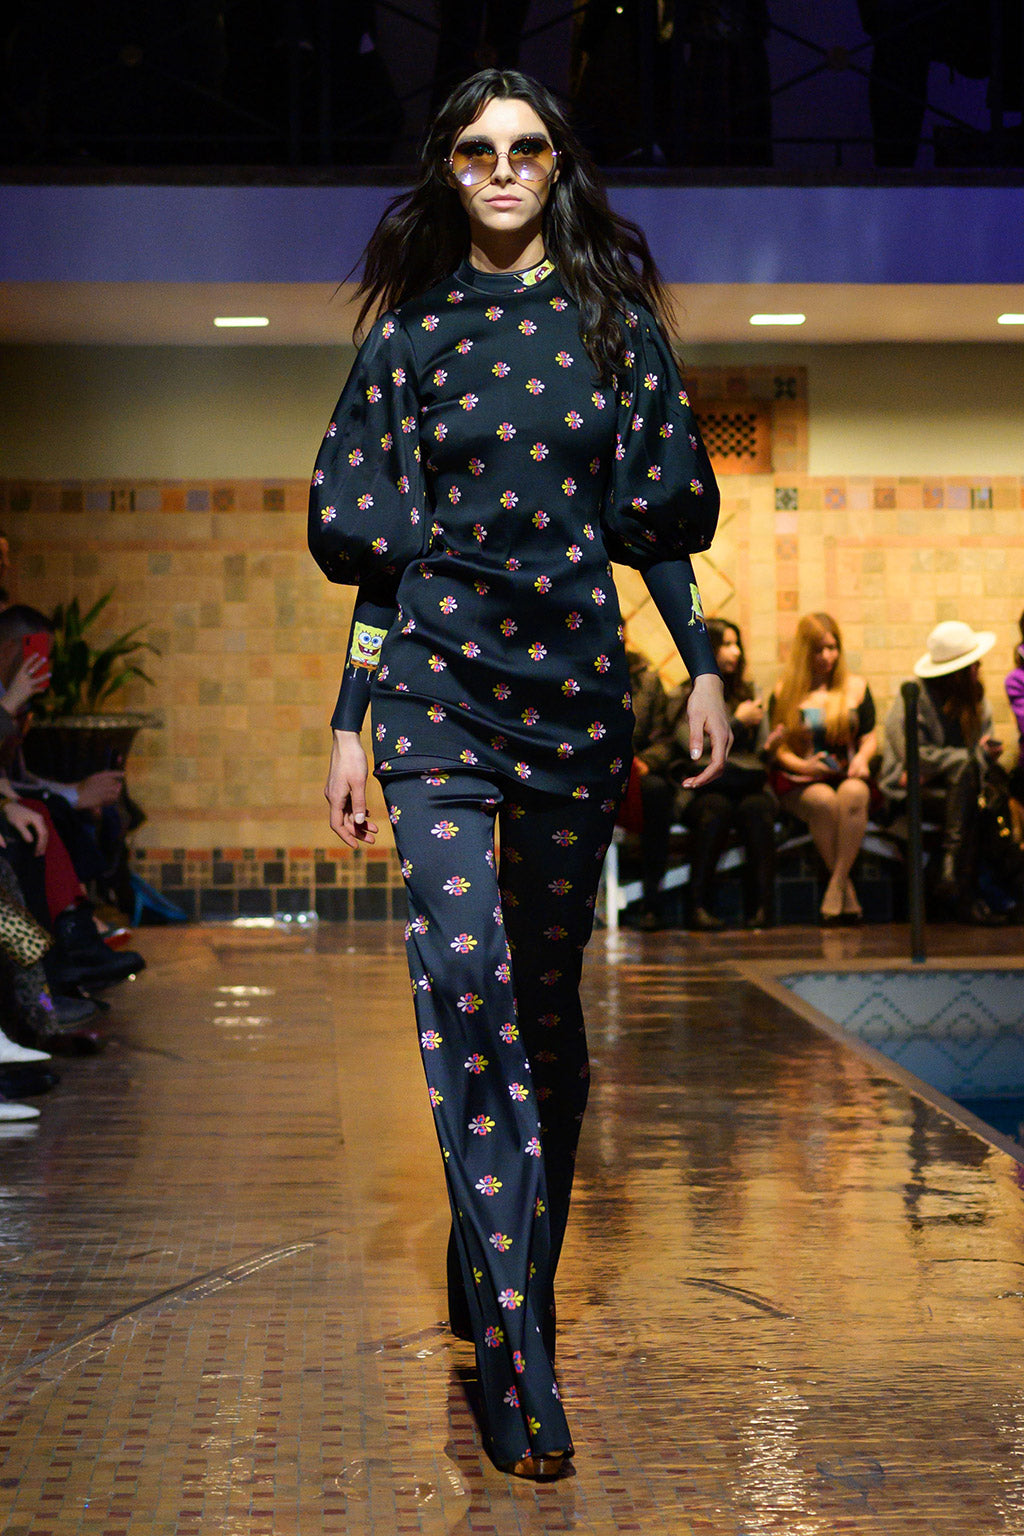 Cynthia Rowley Fall 2019 look 4 featuring a blouse in floral print with elbow length sleeves worn over a SpongeBob print Wetsuit, and pants in floral print